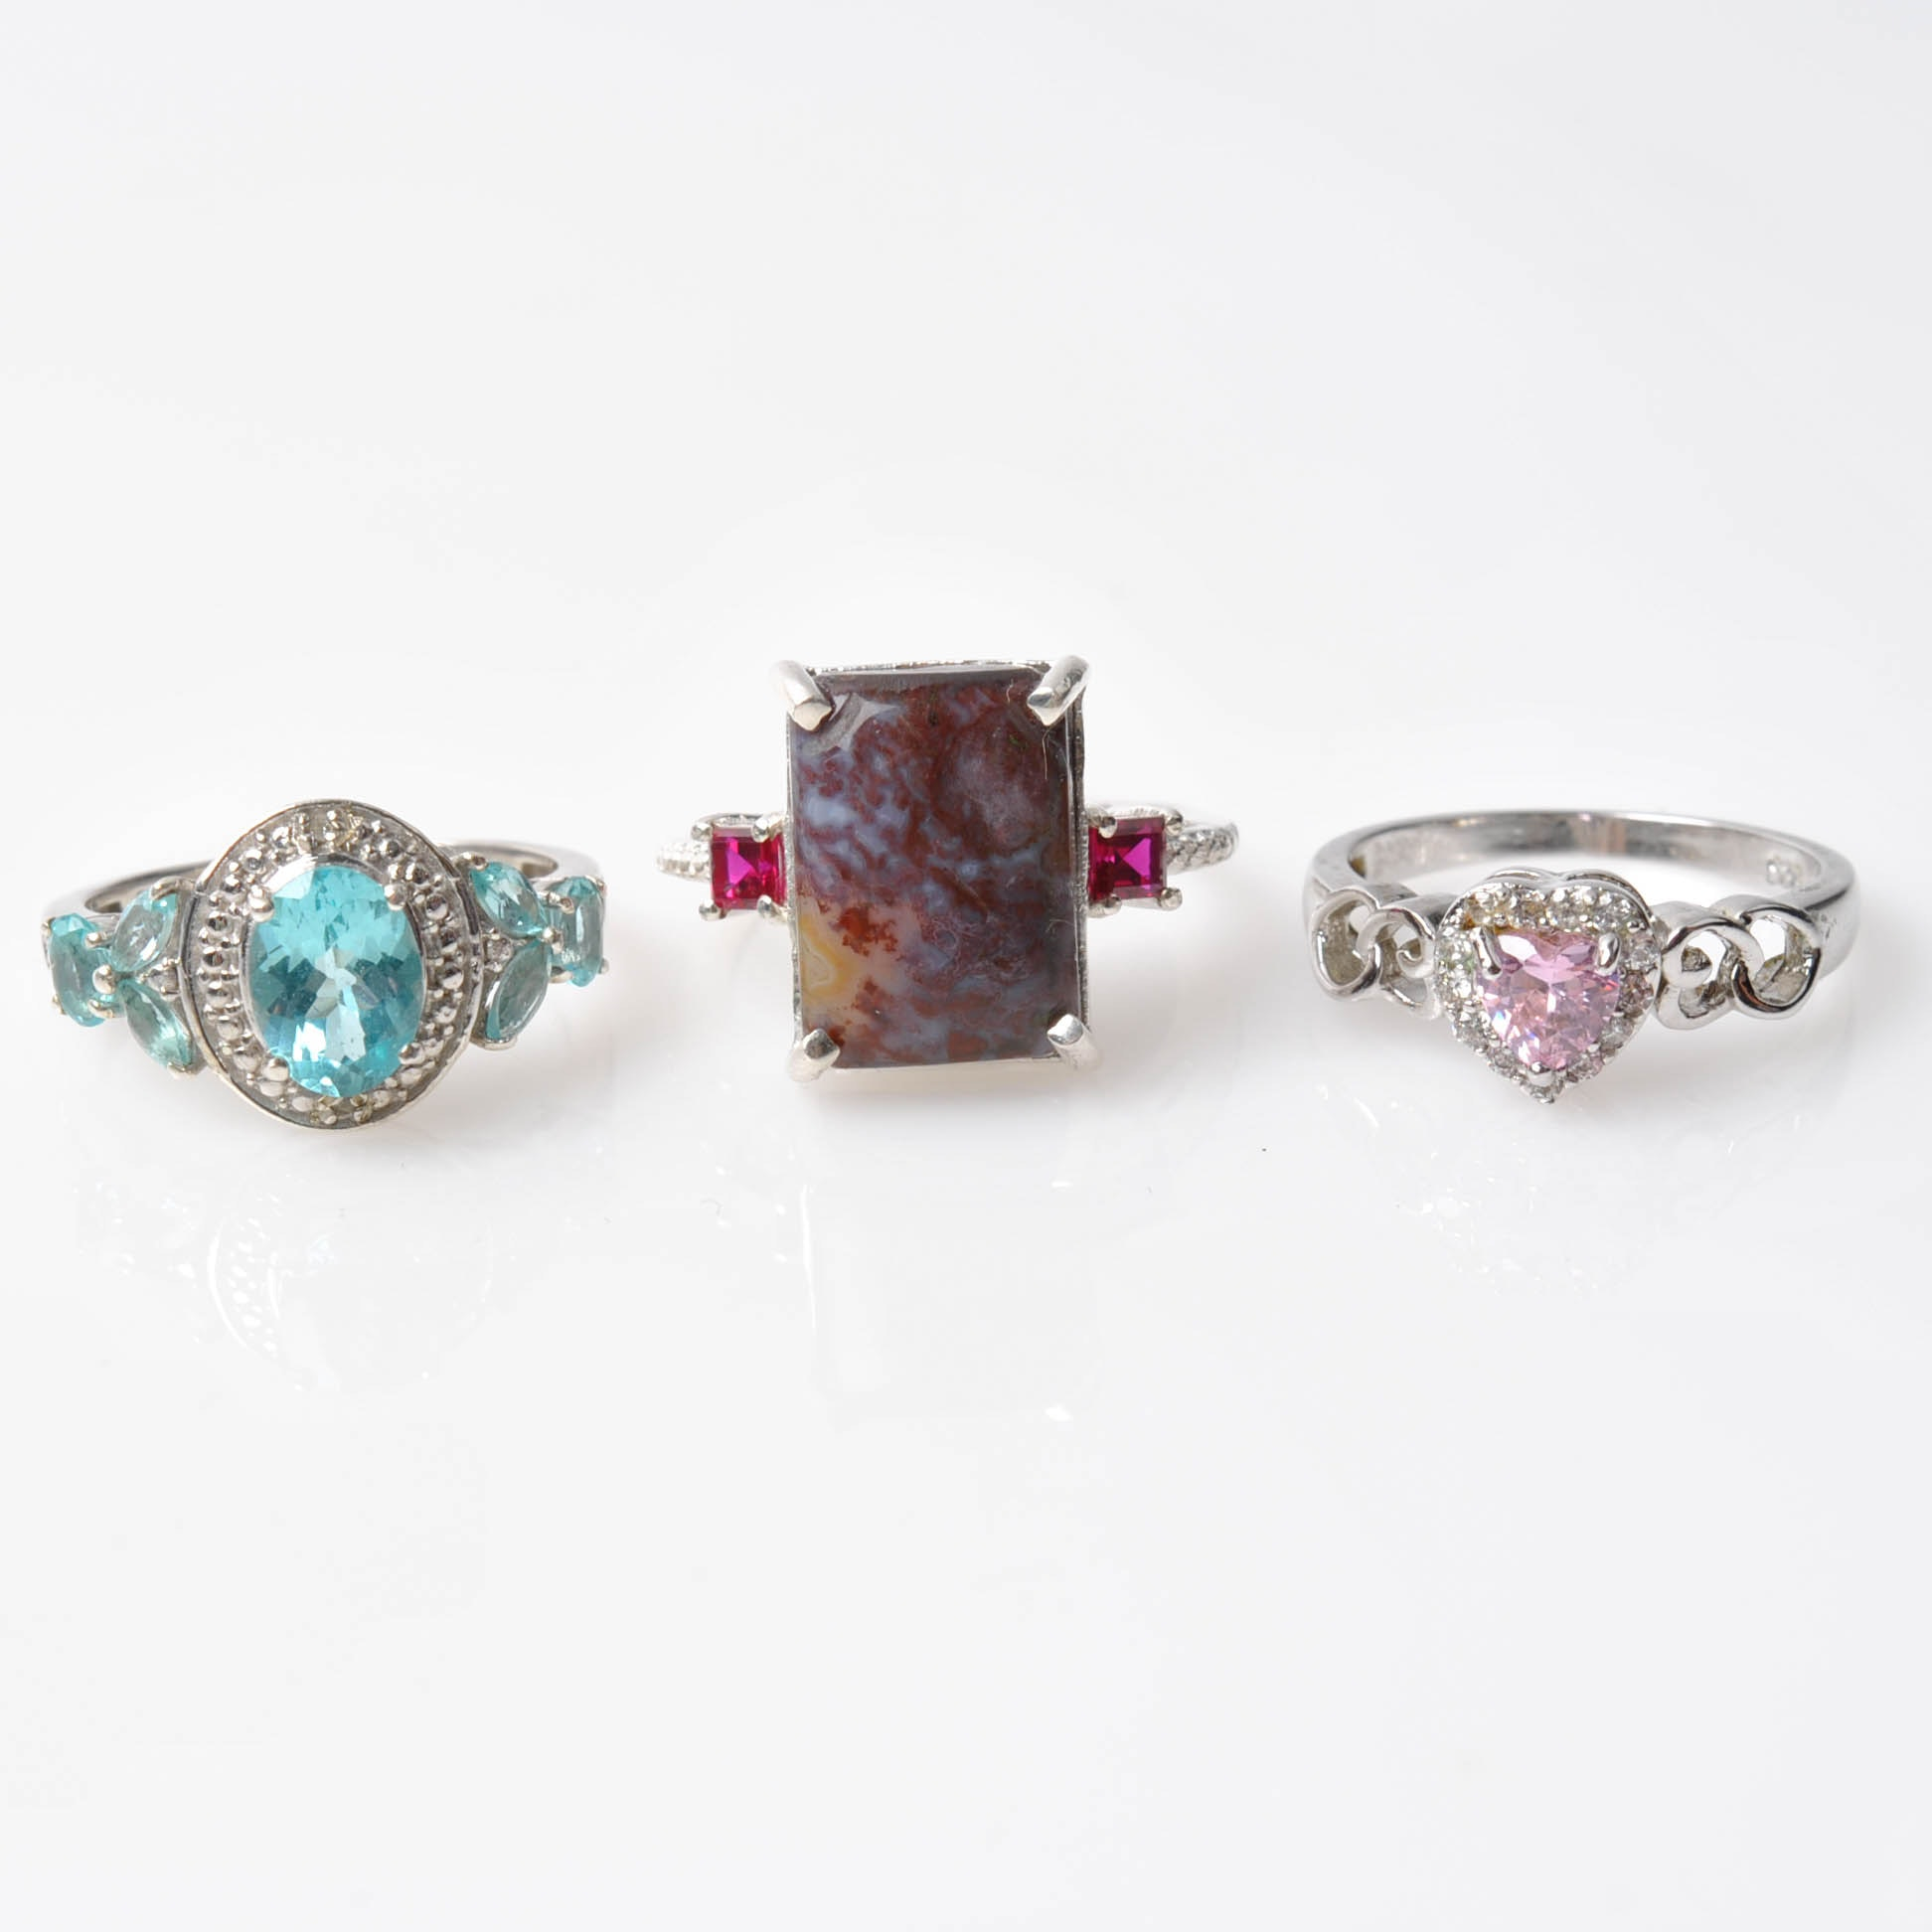 Sterling Silver Agate, Crystal, and Glass Rings